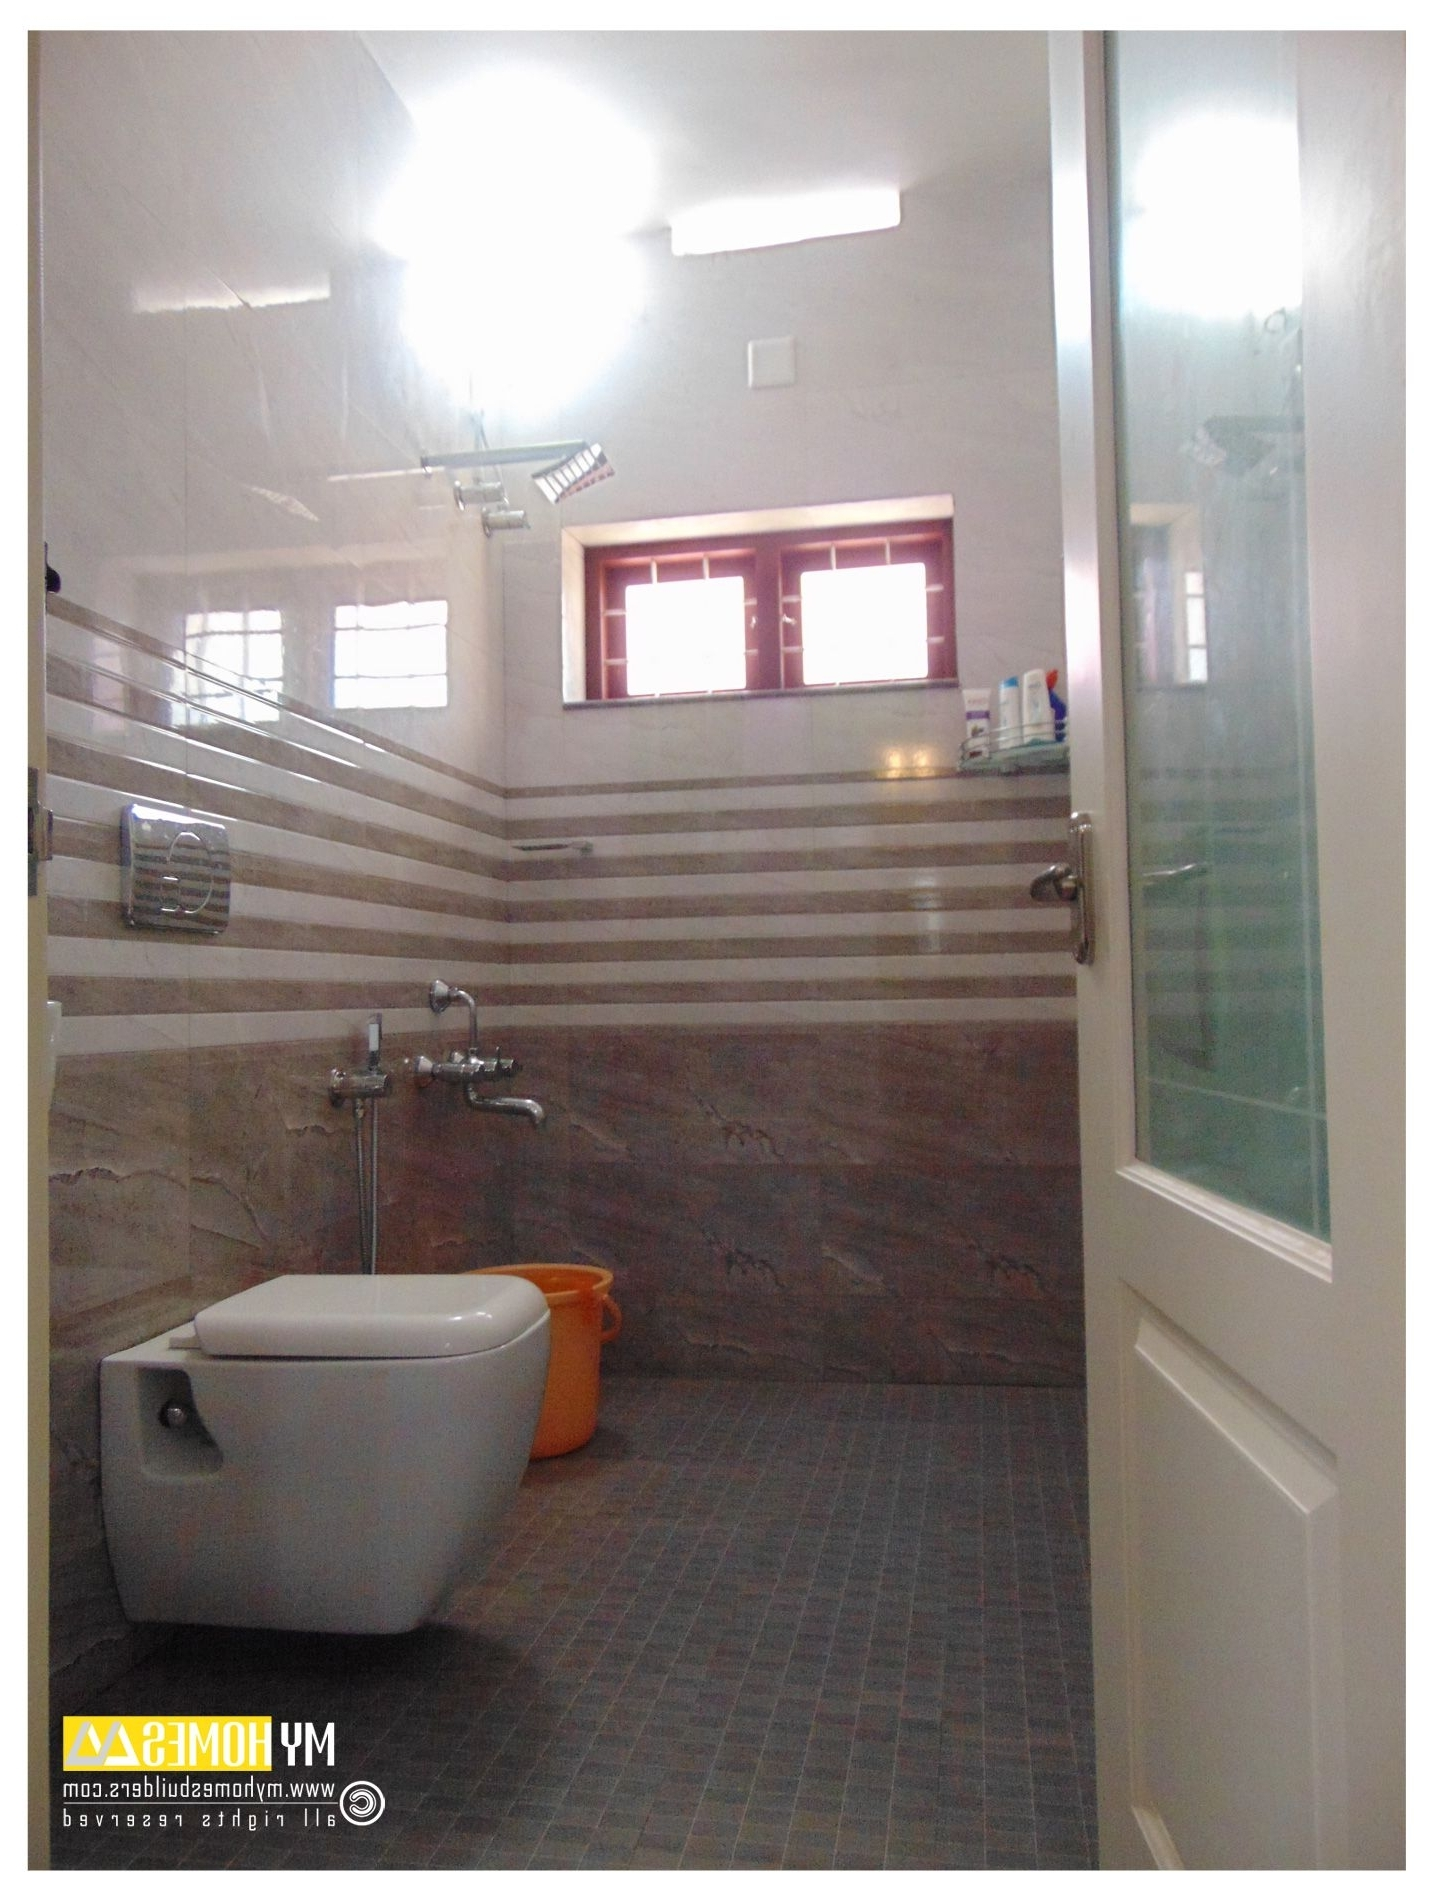 Bathroom Designs In Kerala | Bathroom Designs India Bathroom Tiles Designs Kerala